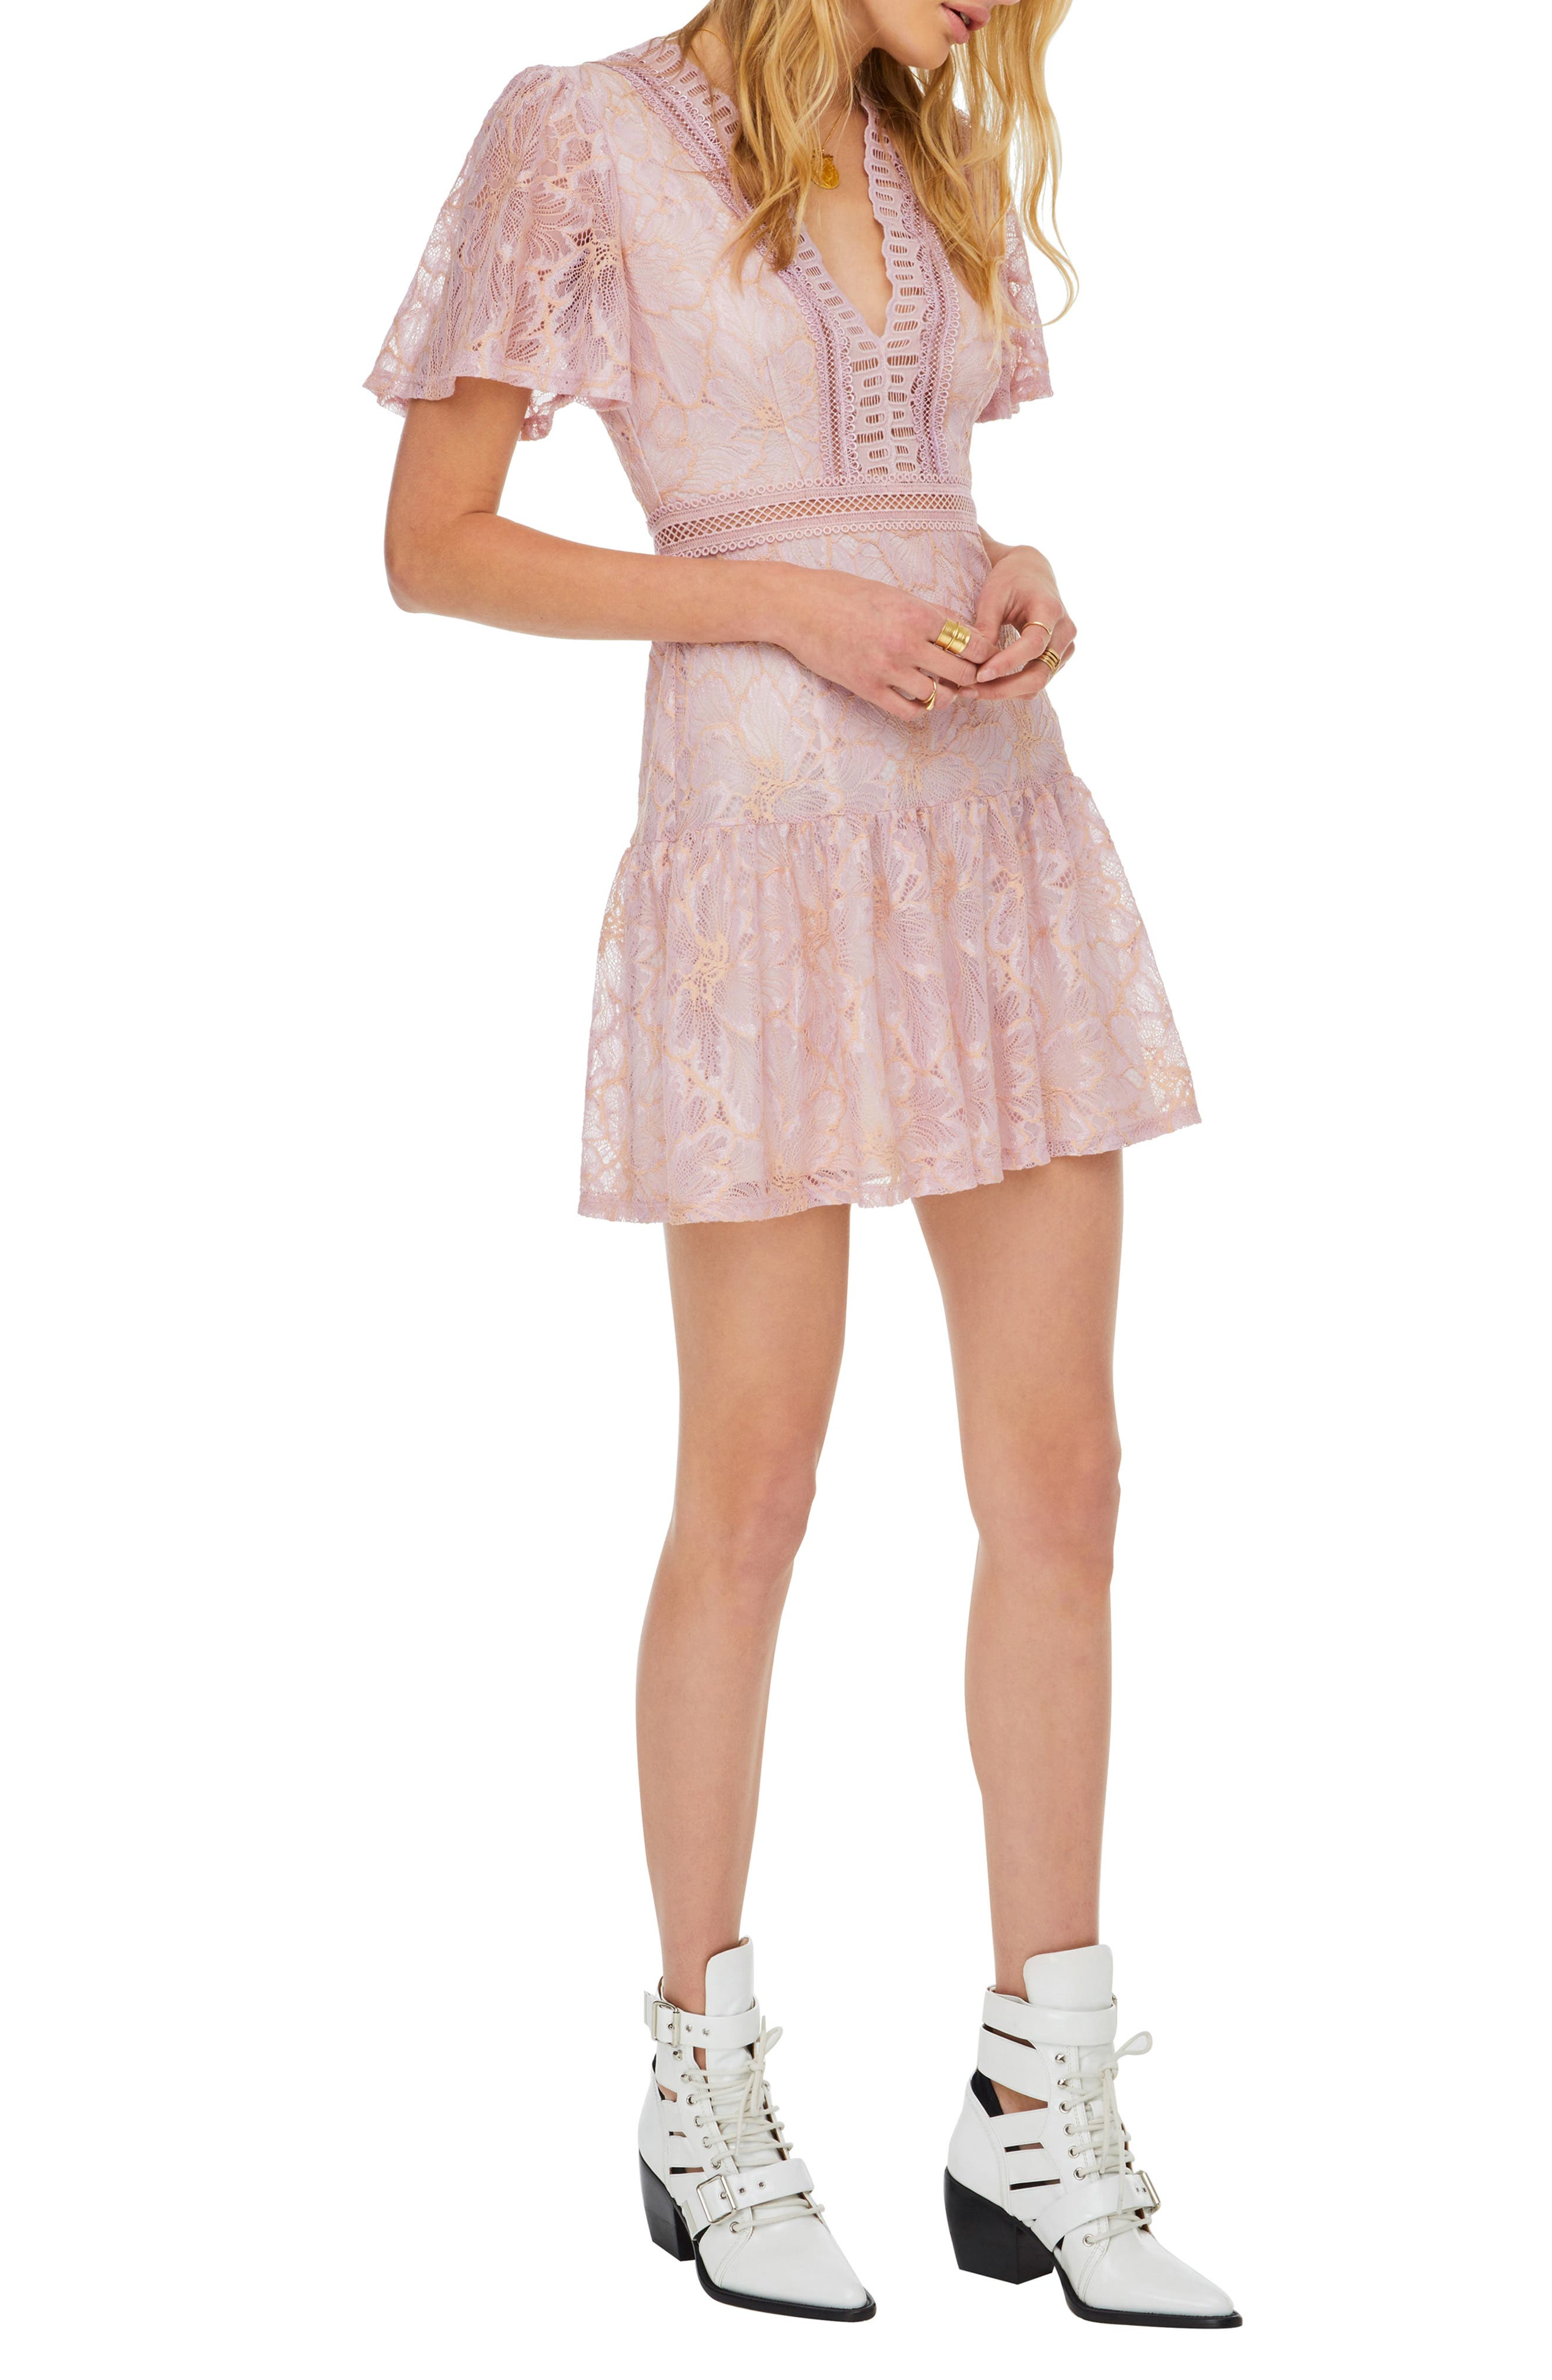 Muse Lace Skater Dress,                             Alternate thumbnail 3, color,                             ICY PINK